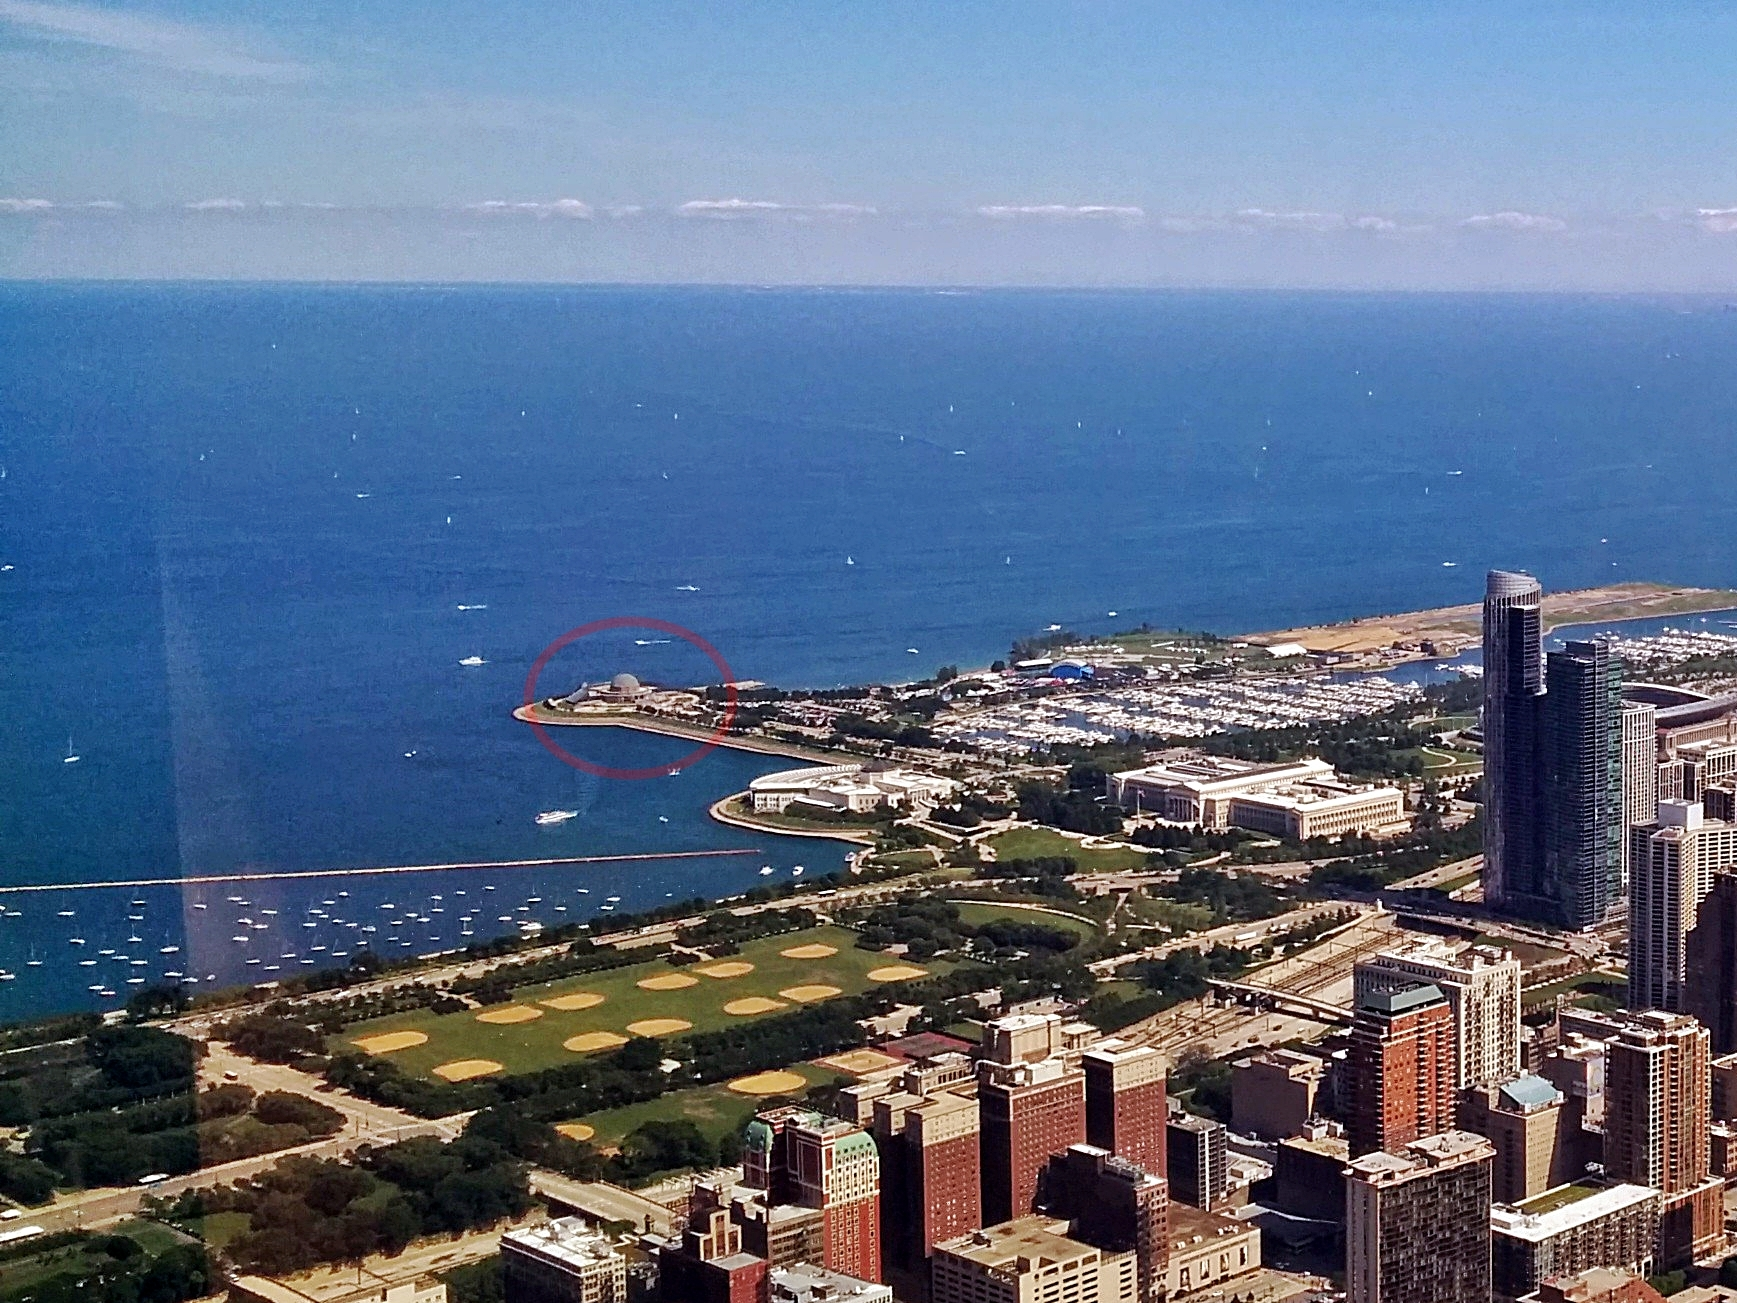 Adler Planetarium from Willis Tower